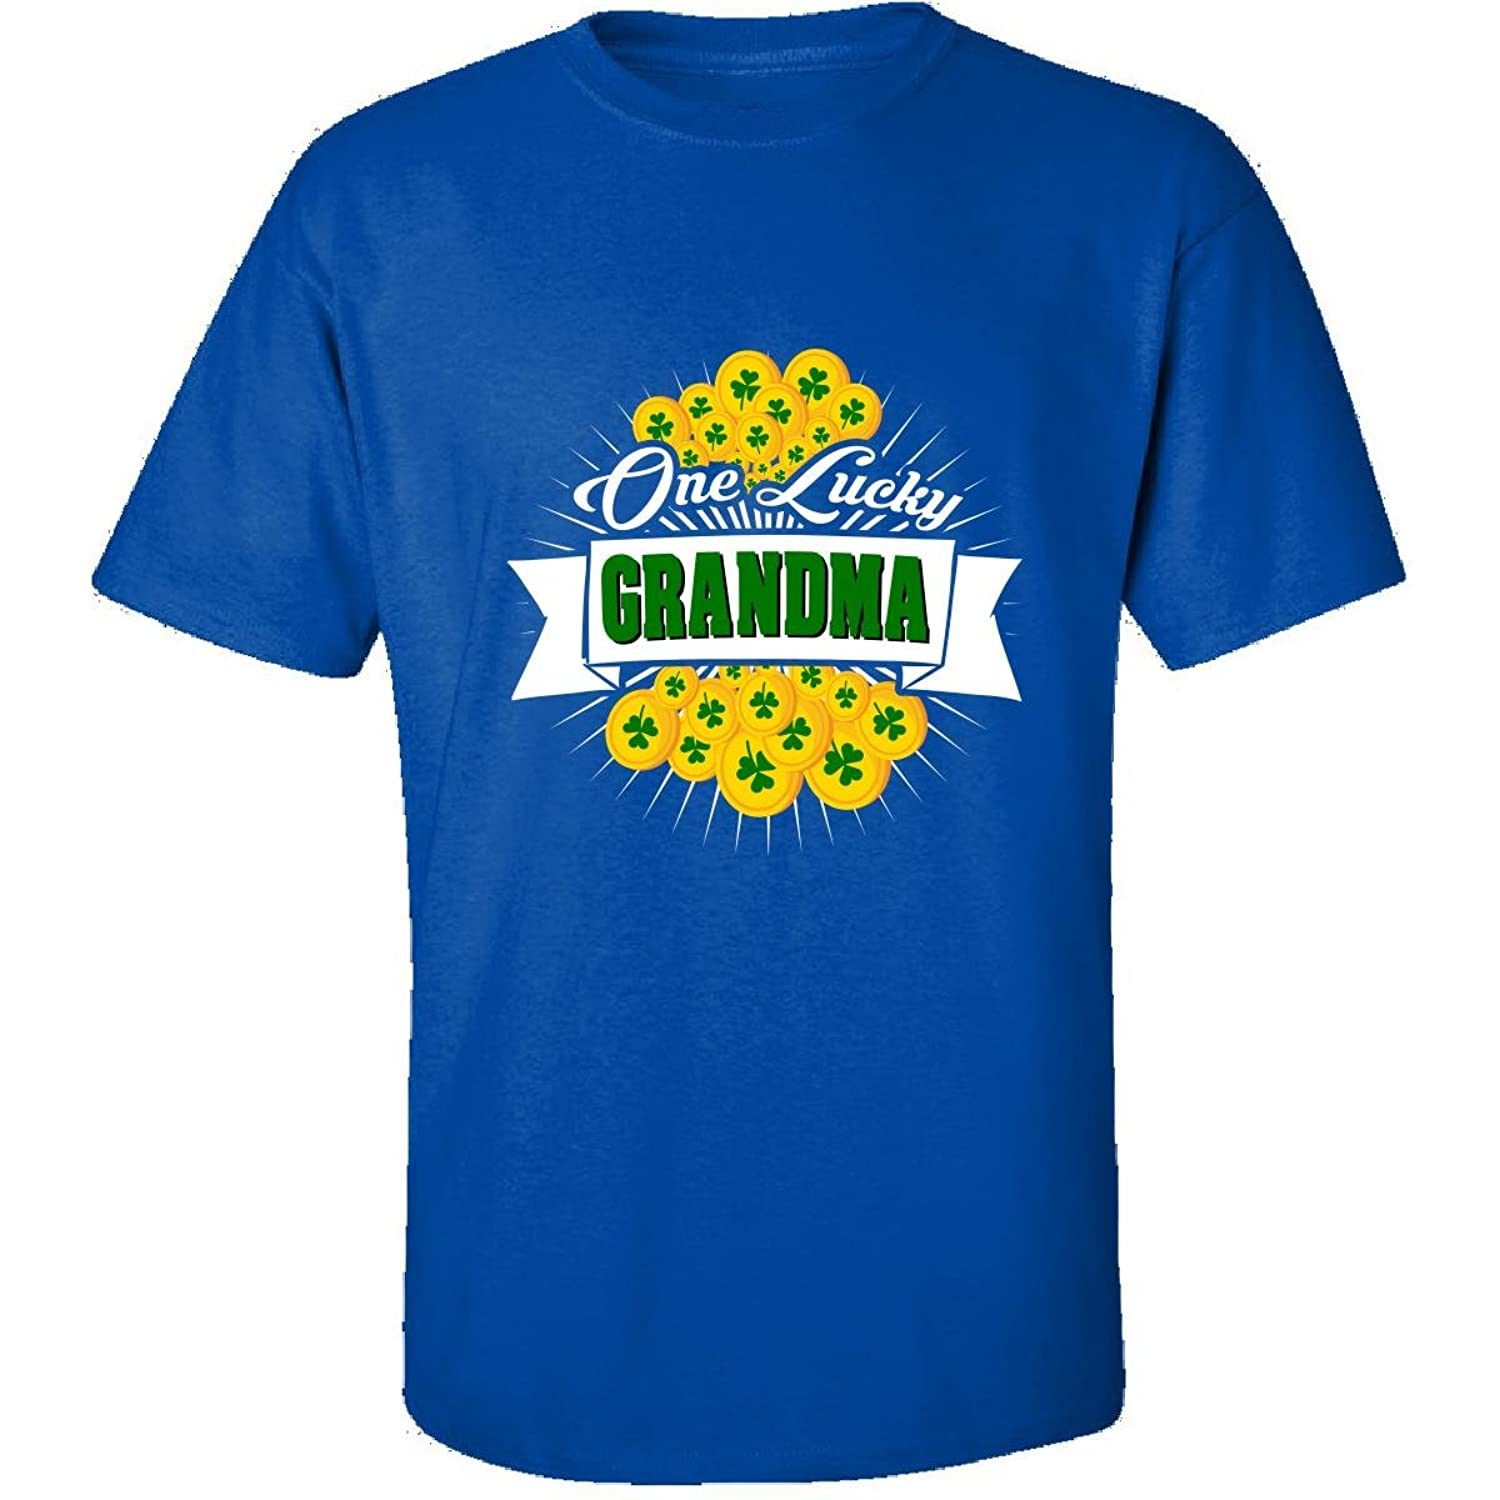 St Patricks Day Shirt One Lucky Grandma Irish Gift - Adult Shirt